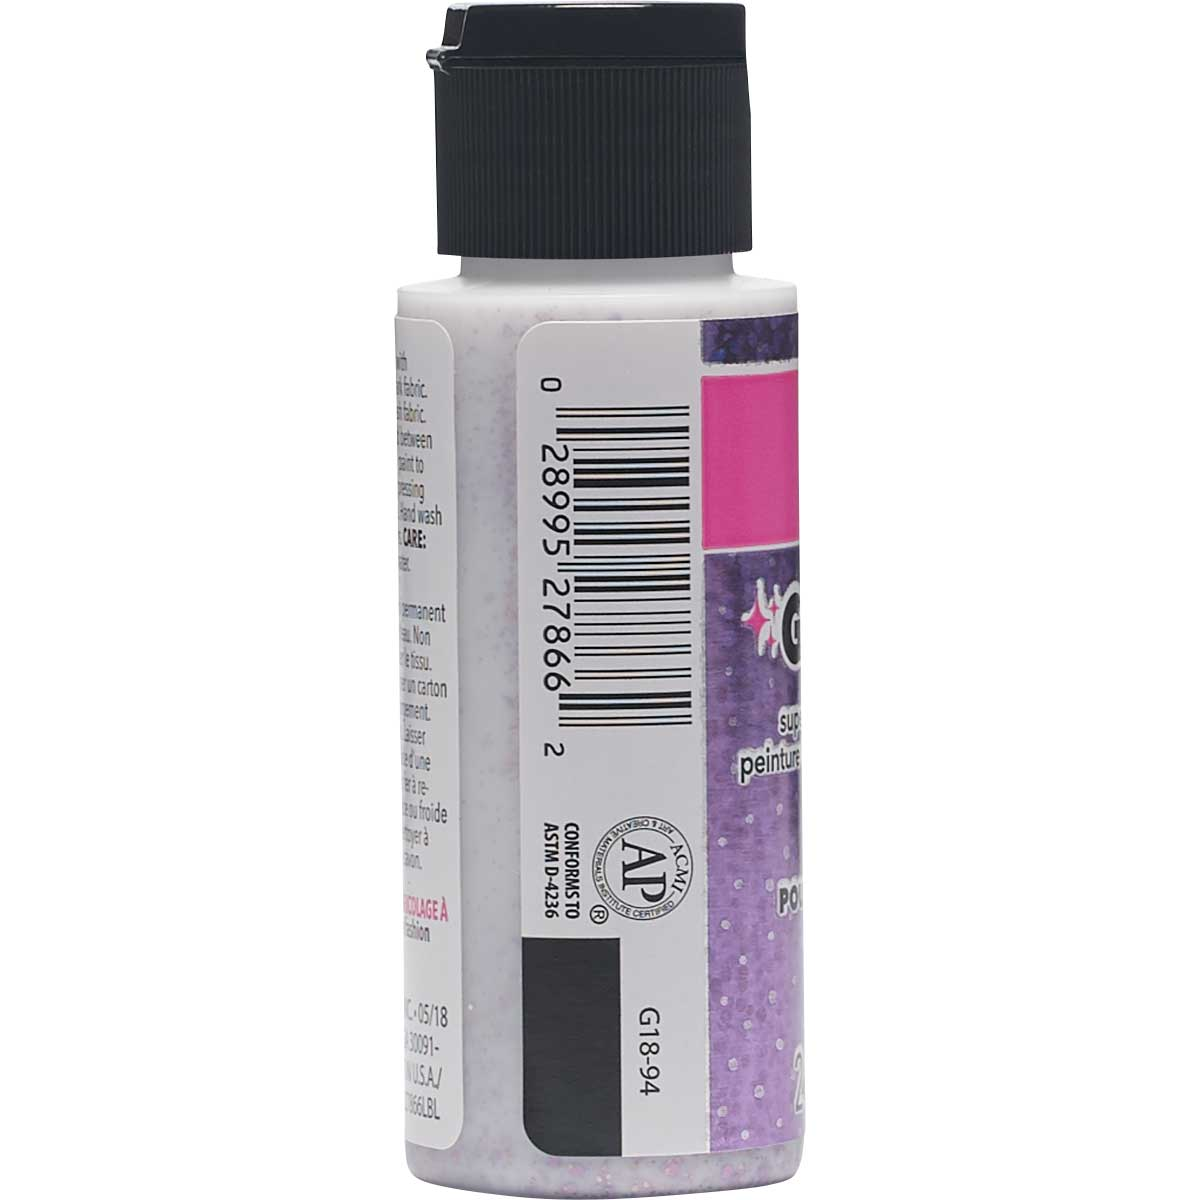 LaurDIY ® Galaxy Glitter Fabric Paint - Stardust, 2 oz.